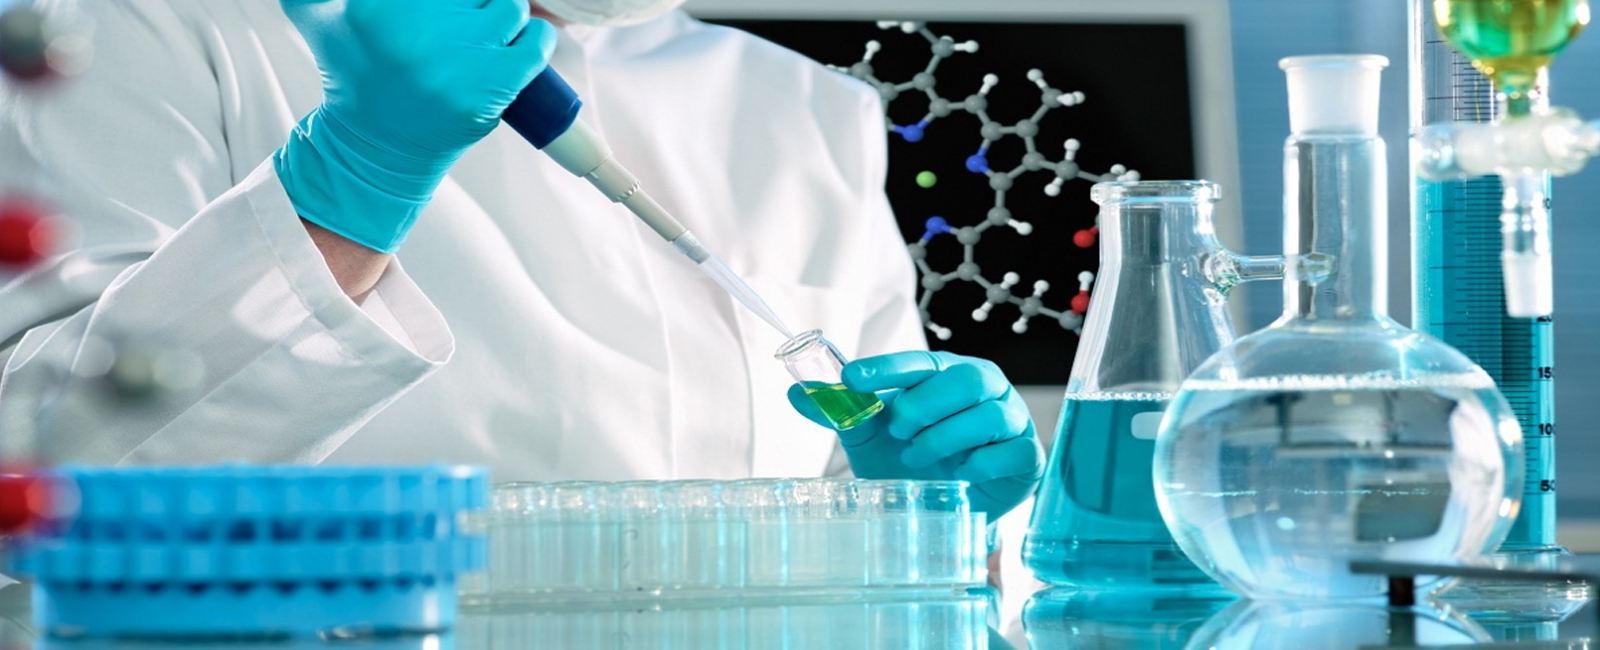 KD Chem Pharma main_banner KD Chem Pharma | Nutraceutical Supplements And Product | Pharmaceutical Company